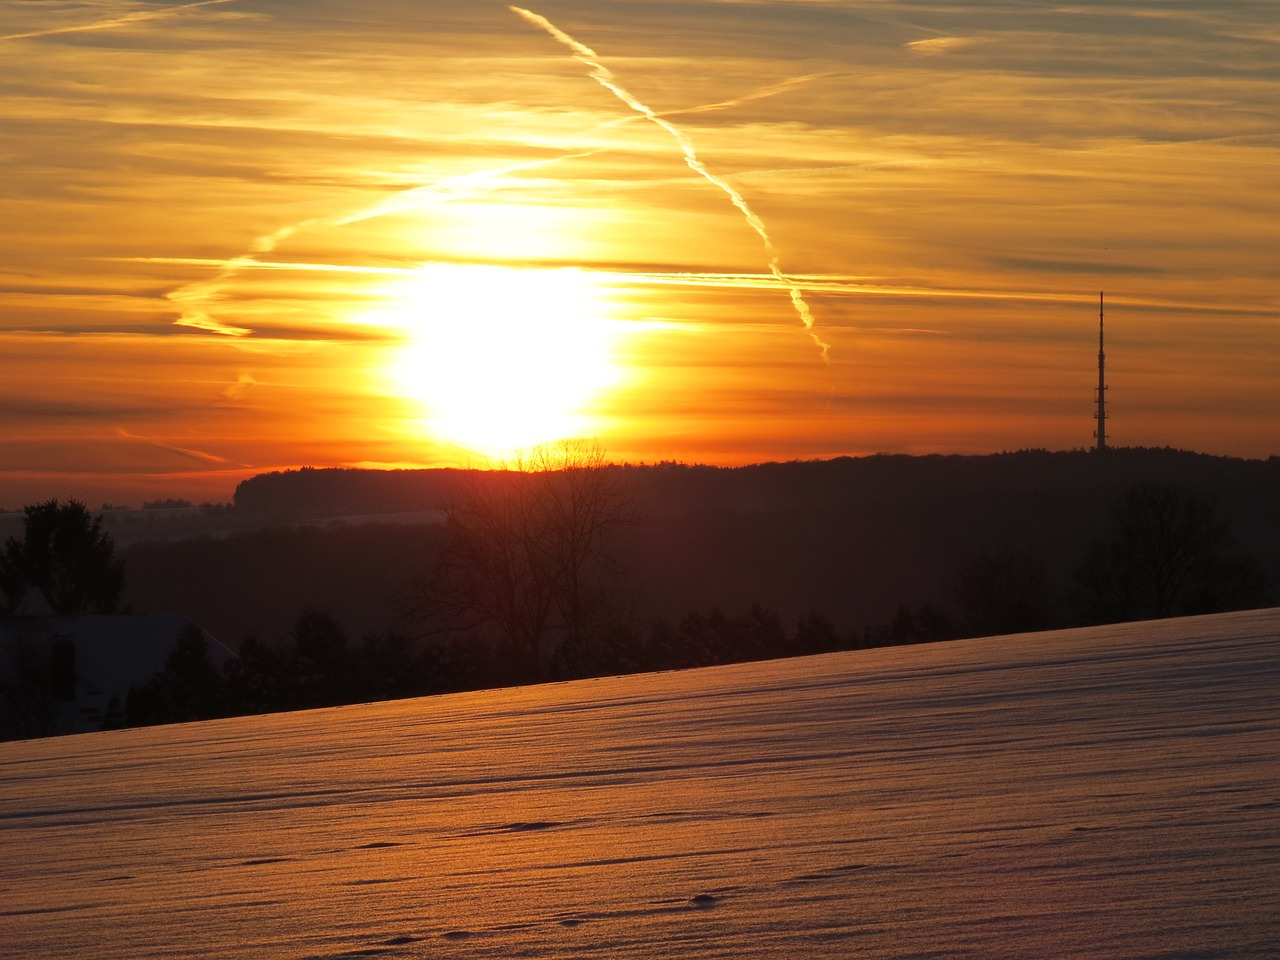 sunset,sun,sky,clouds,snow,golden,sparkle,snow landscape,ulm,eselsberg,radio tower,arnegg,contrail,free pictures, free photos, free images, royalty free, free illustrations, public domain